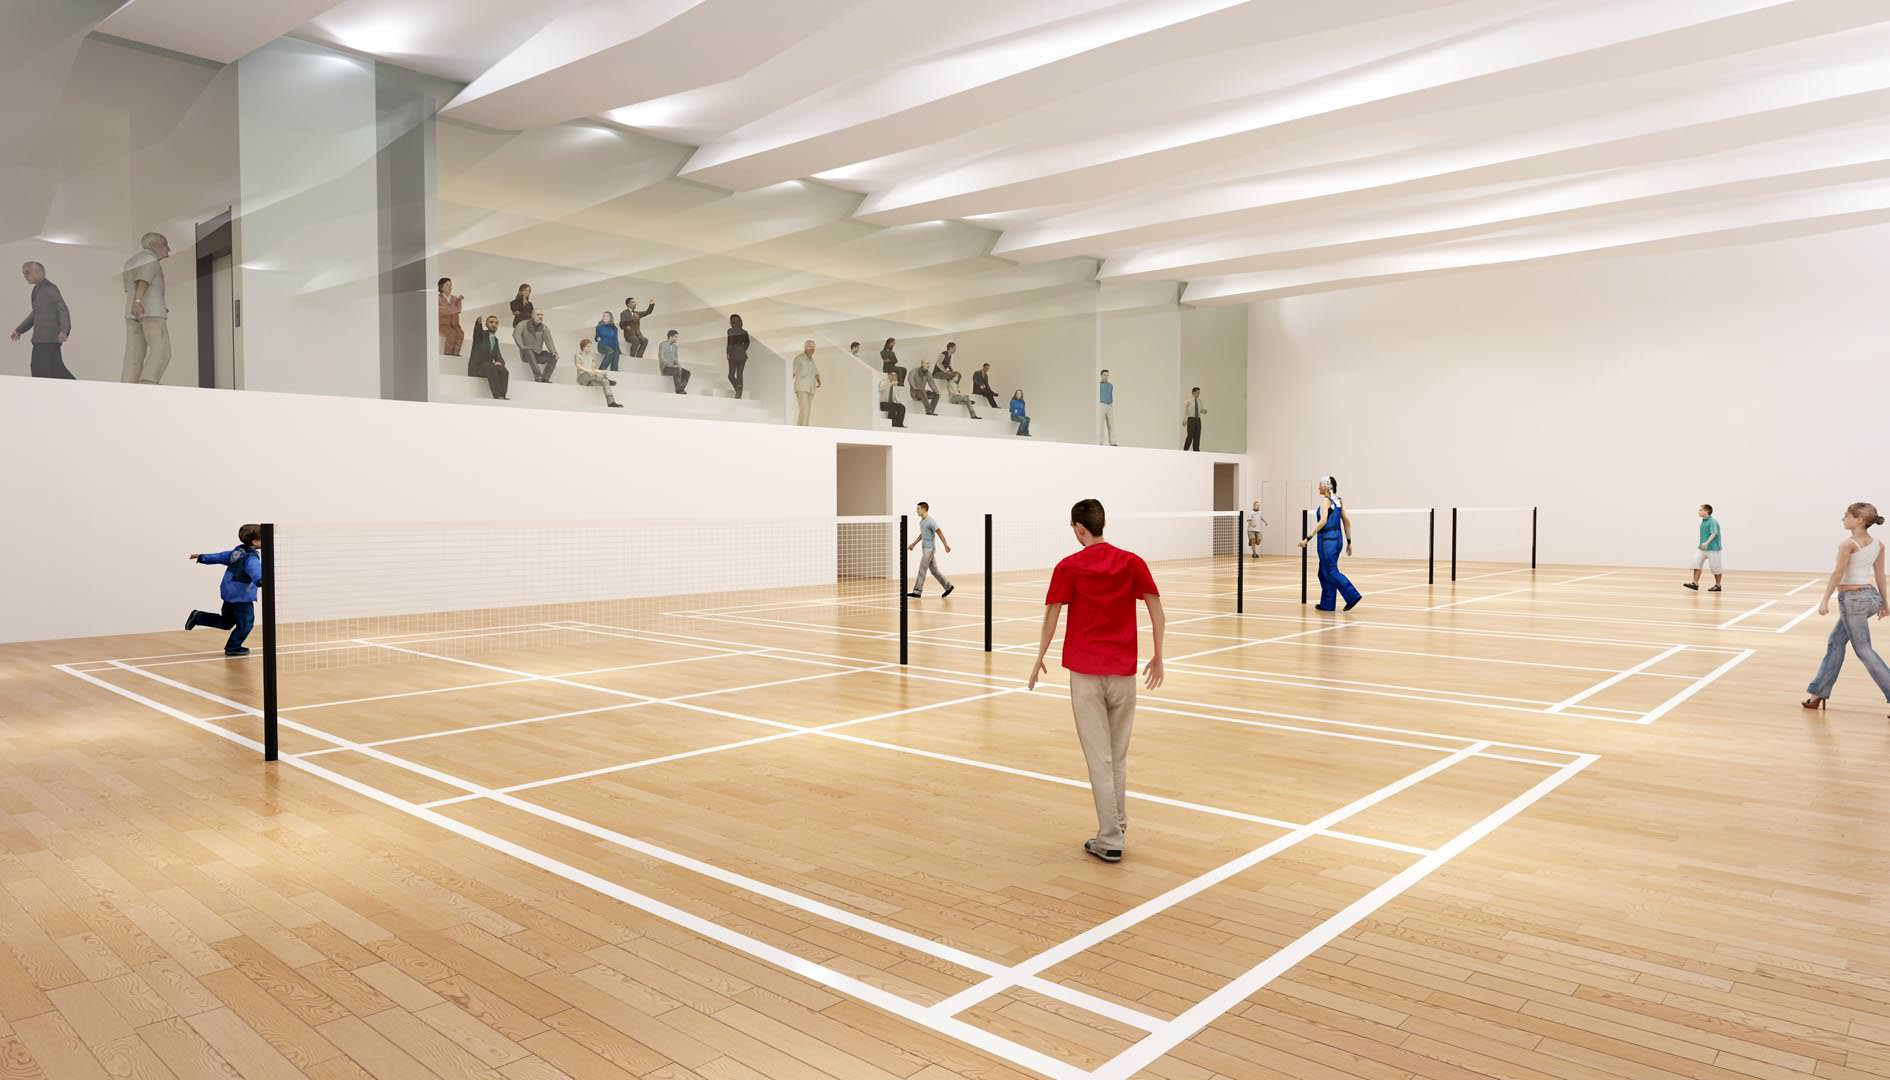 badminton centre internal